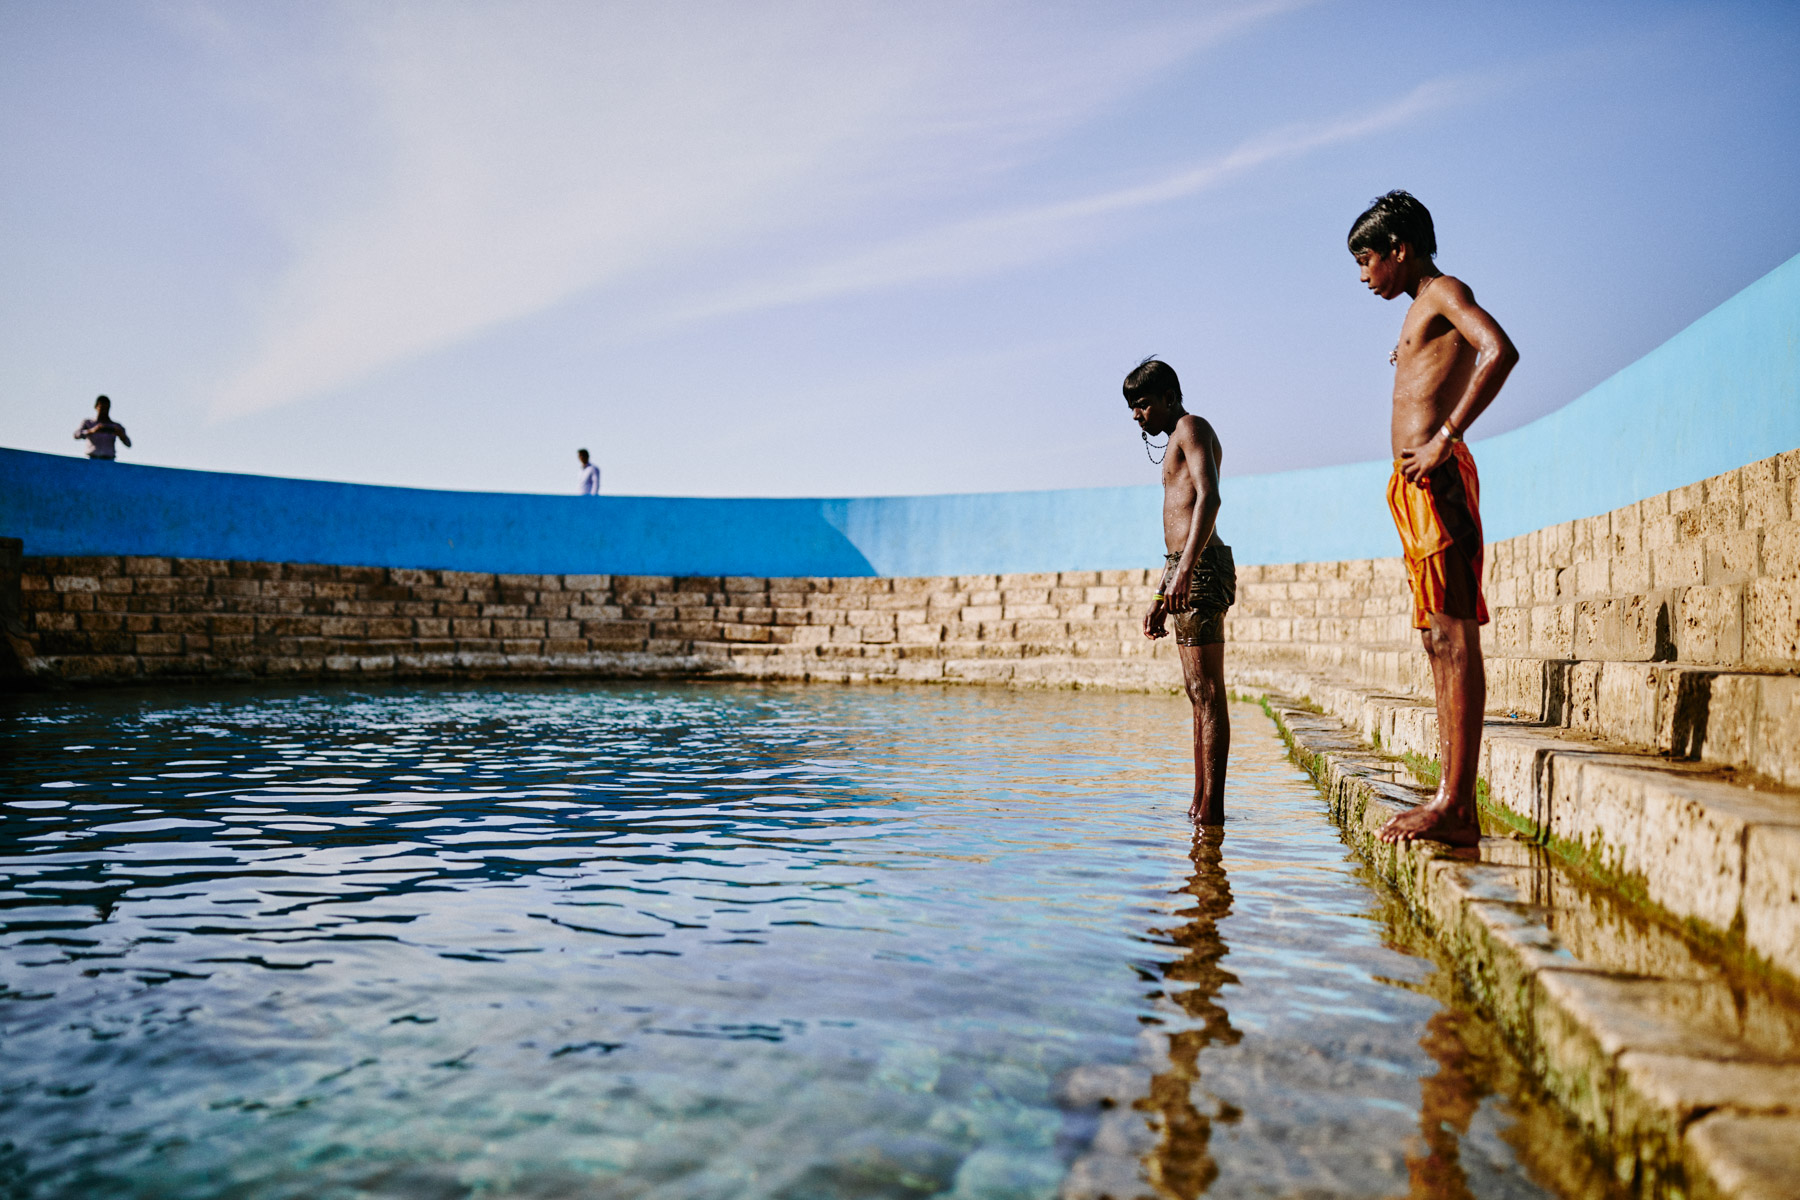 Young boys swim and dive at the Keerimalai Springs, sacred pools fed by sea waters on the northern shores of the Jaffna Peninsula in Sri Lanka.